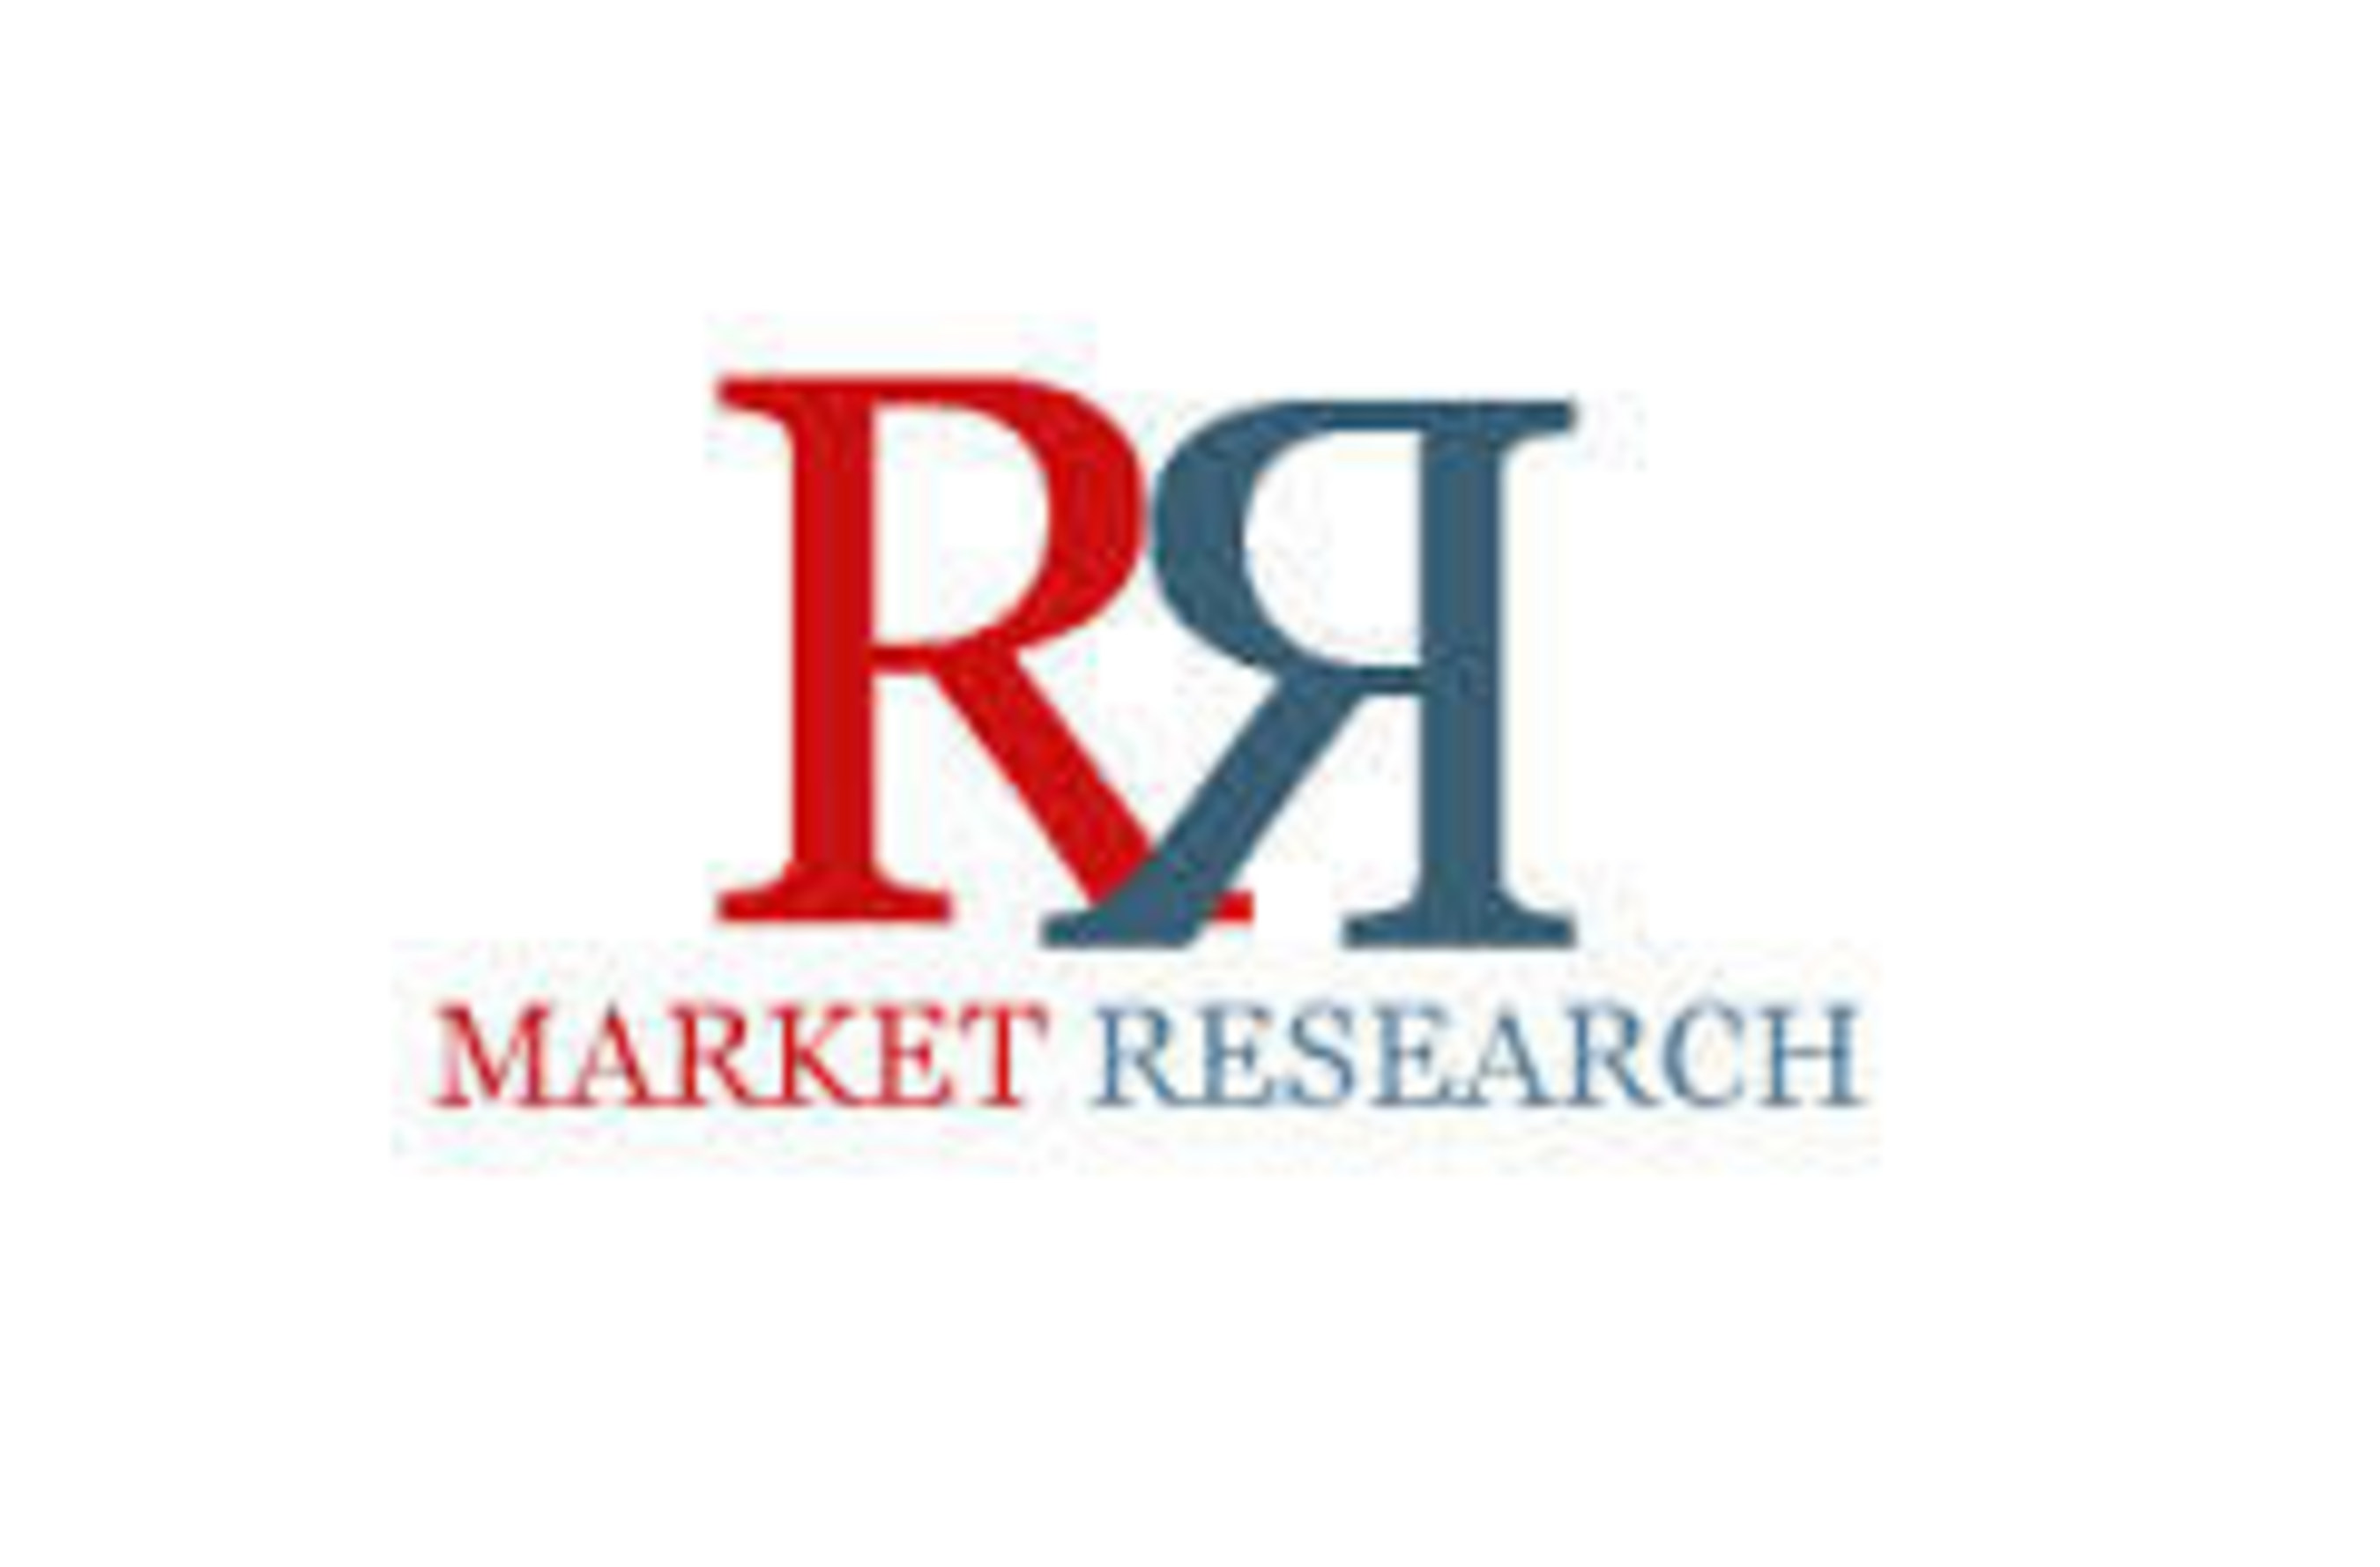 Electrical Enclosure Market to Make 6.4% Growth to 2020: Research Based on Form Factor, Product Type, Industry Verticals, and Geography